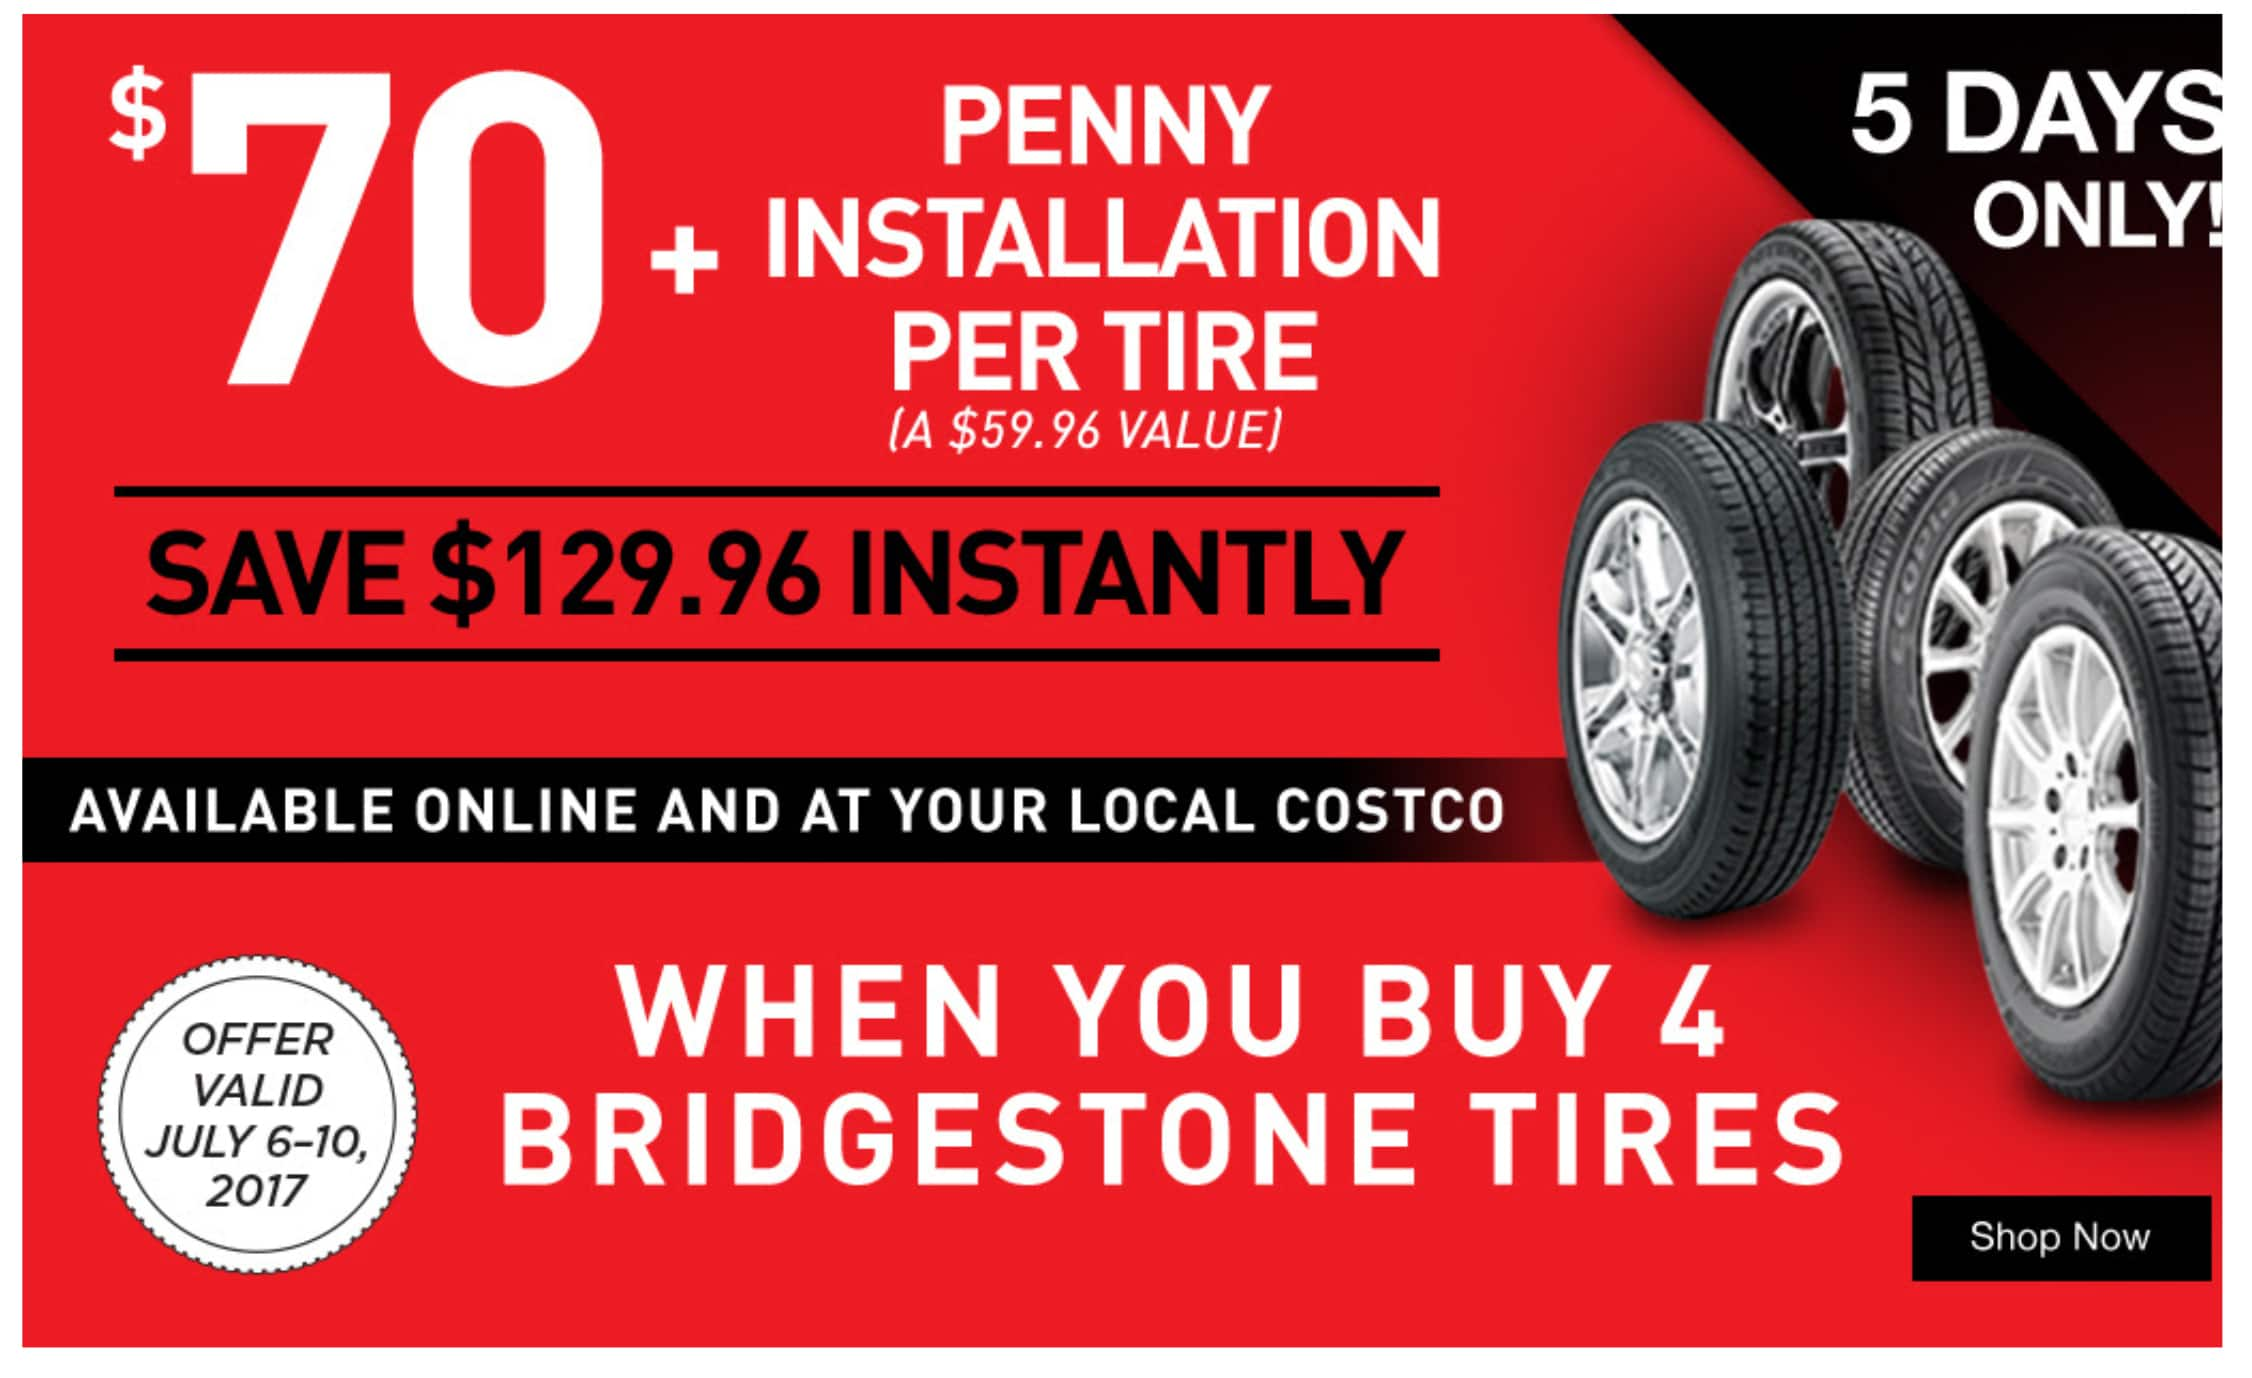 Costco - $70 OFF a Set of 4 Bridgestone Tires + 1¢ tire installation - through 7/10 (extended ...